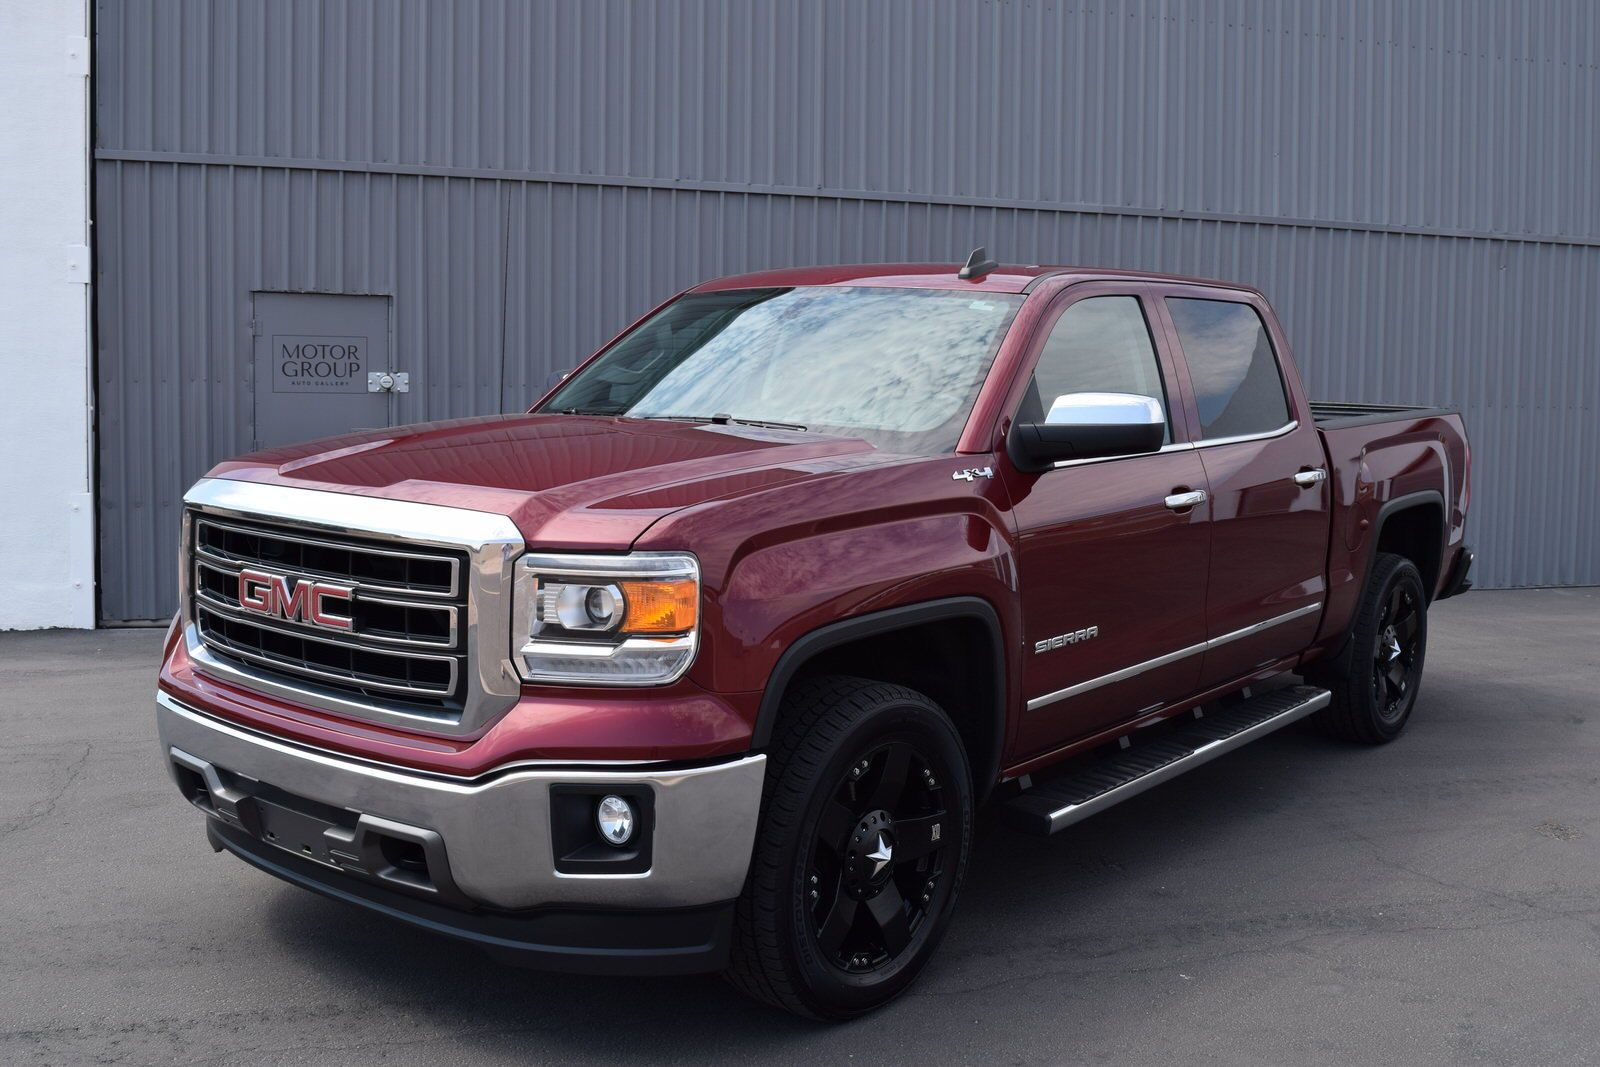 2002 gmc sierra 1500 cars and trucks i have owned pinterest sierra 1500 and cars